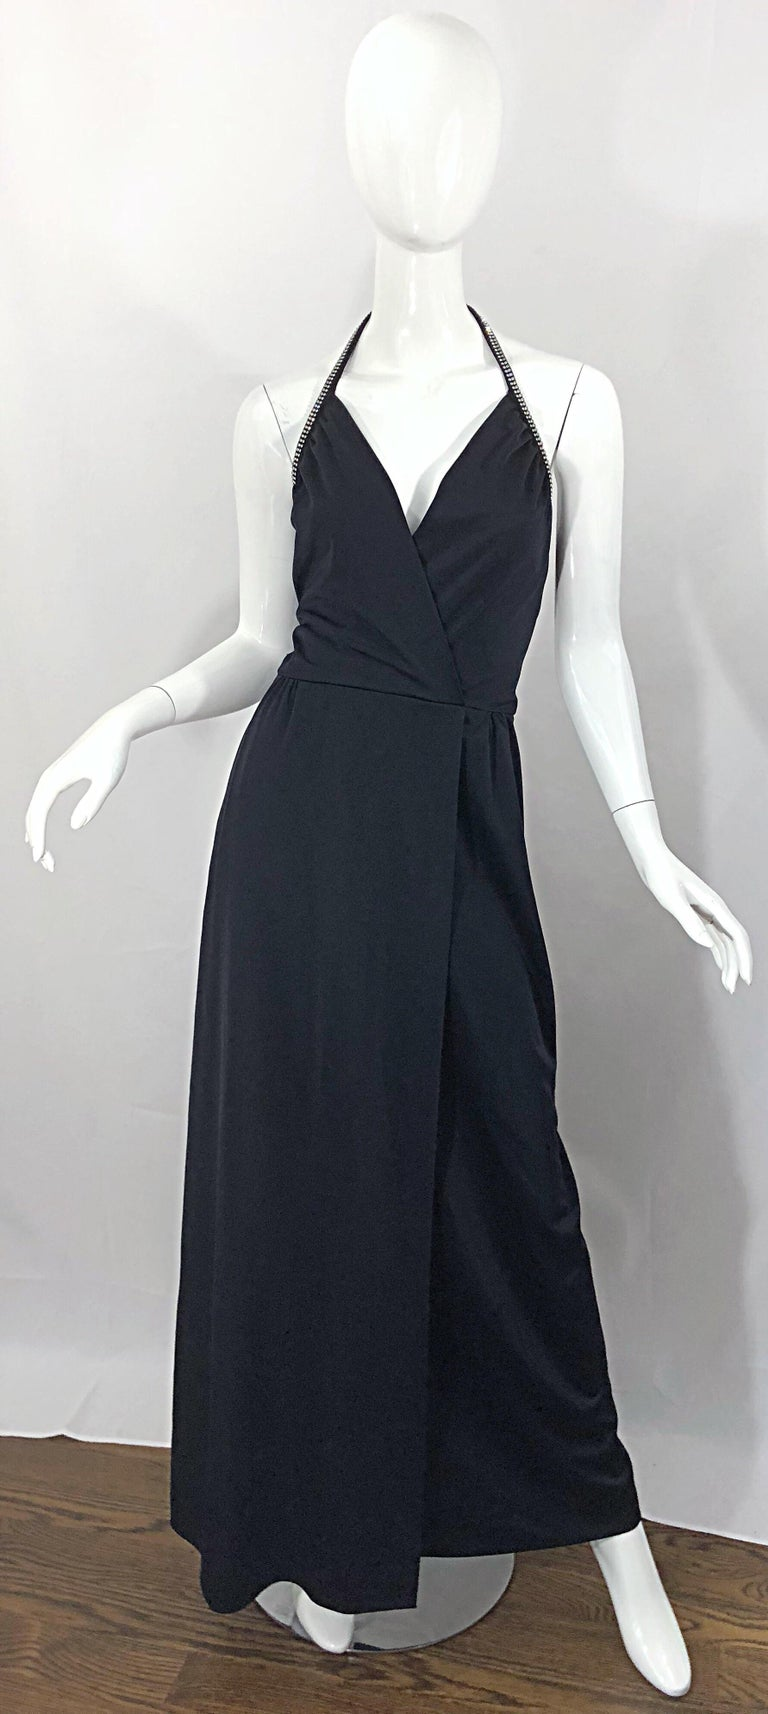 Sexy, yet classic 1970s LILLI DIAMOND black jersey rhinestone encrusted faux wrap jersey plunging Grecian halter gown / maxi dress! Features a fitted crossover bodice with a flattering and forgiving full skirt. Wonderful soft jersey fabric stretches